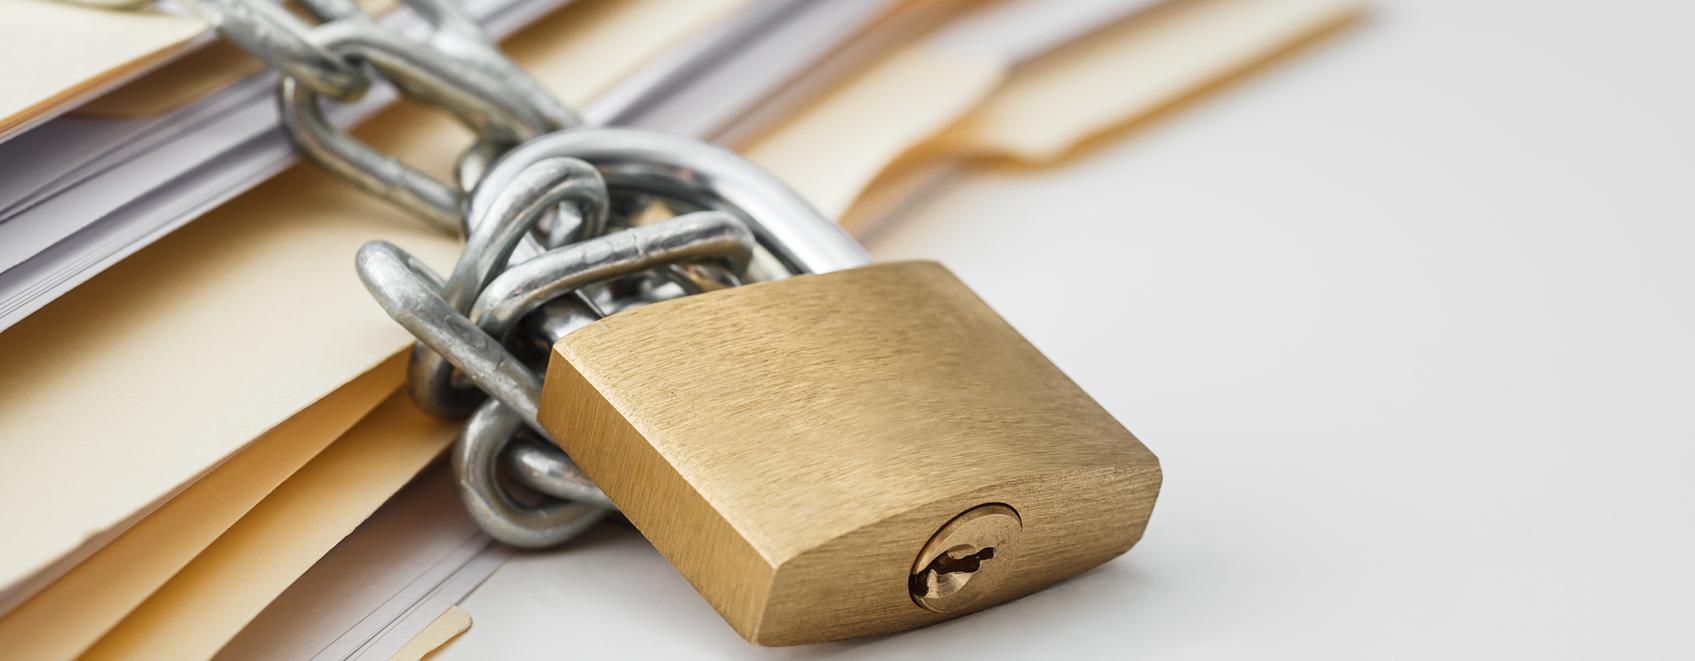 stack of manila folders, with padlock and chains on them